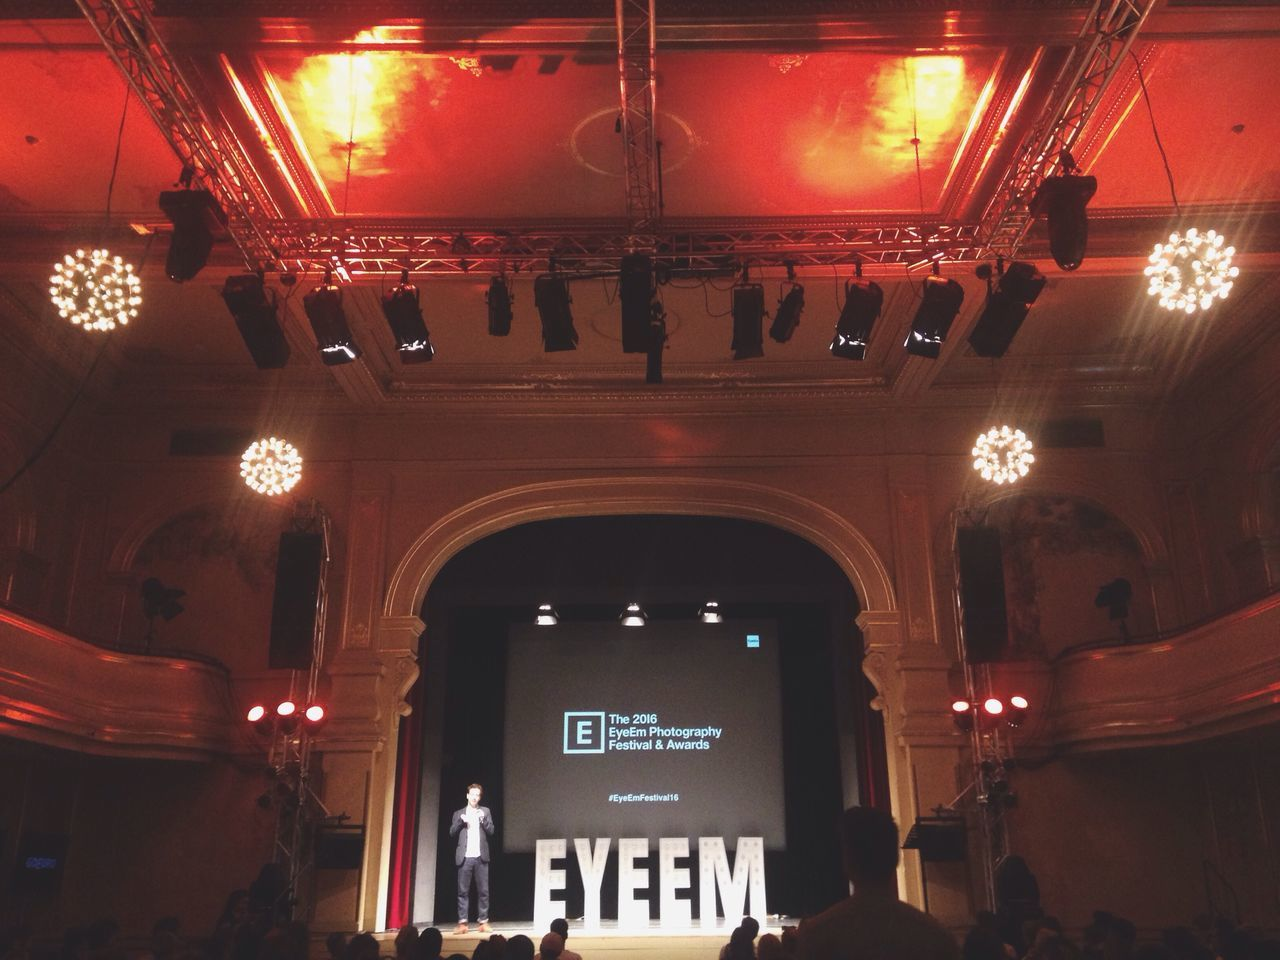 So proud of our team. Welcome to Eyeemfestival16